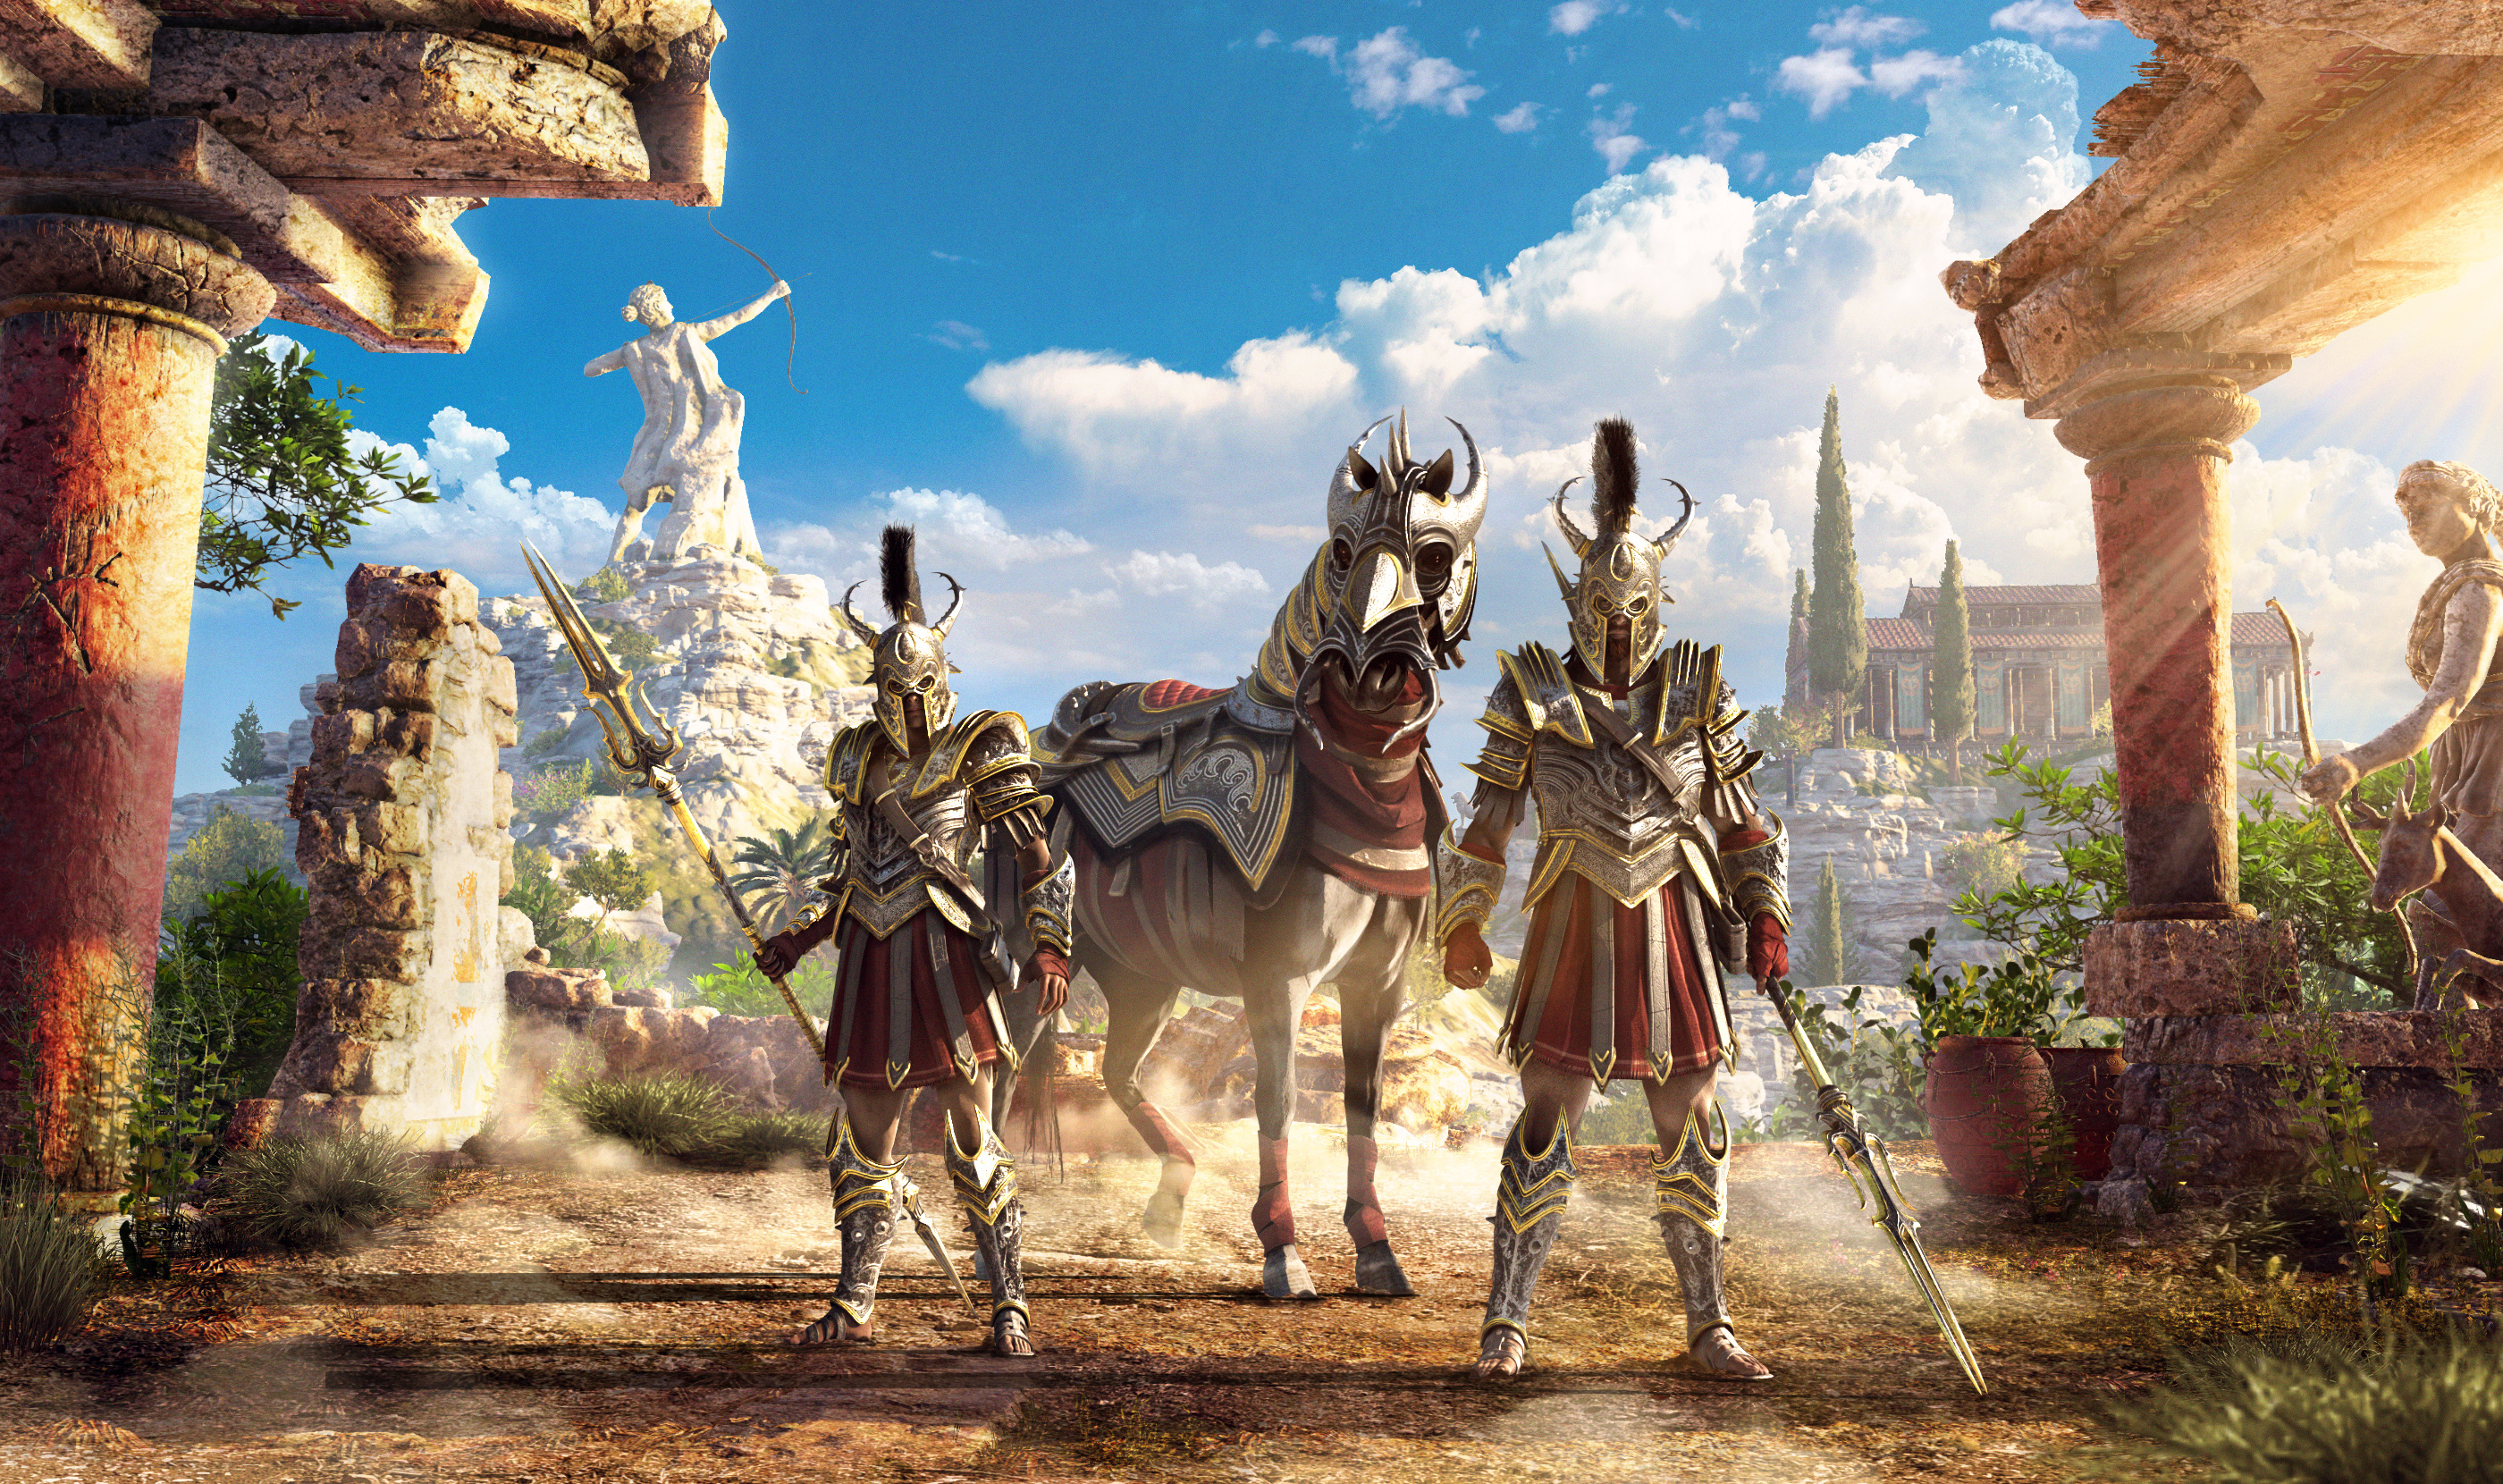 Assassin's Creed Odyssey Wallpapers, Pictures, Images